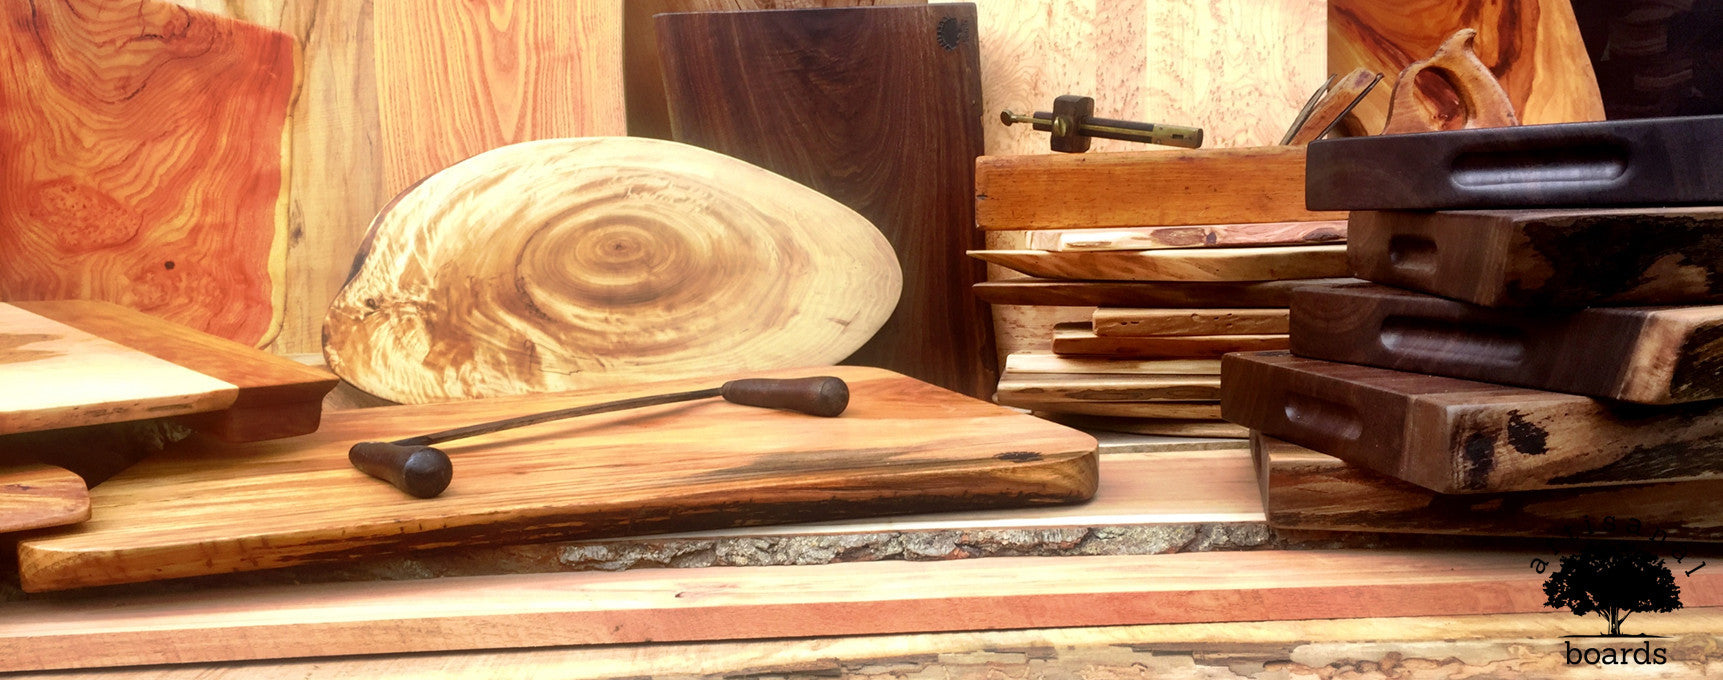 Live edge cutting boards and serving trays